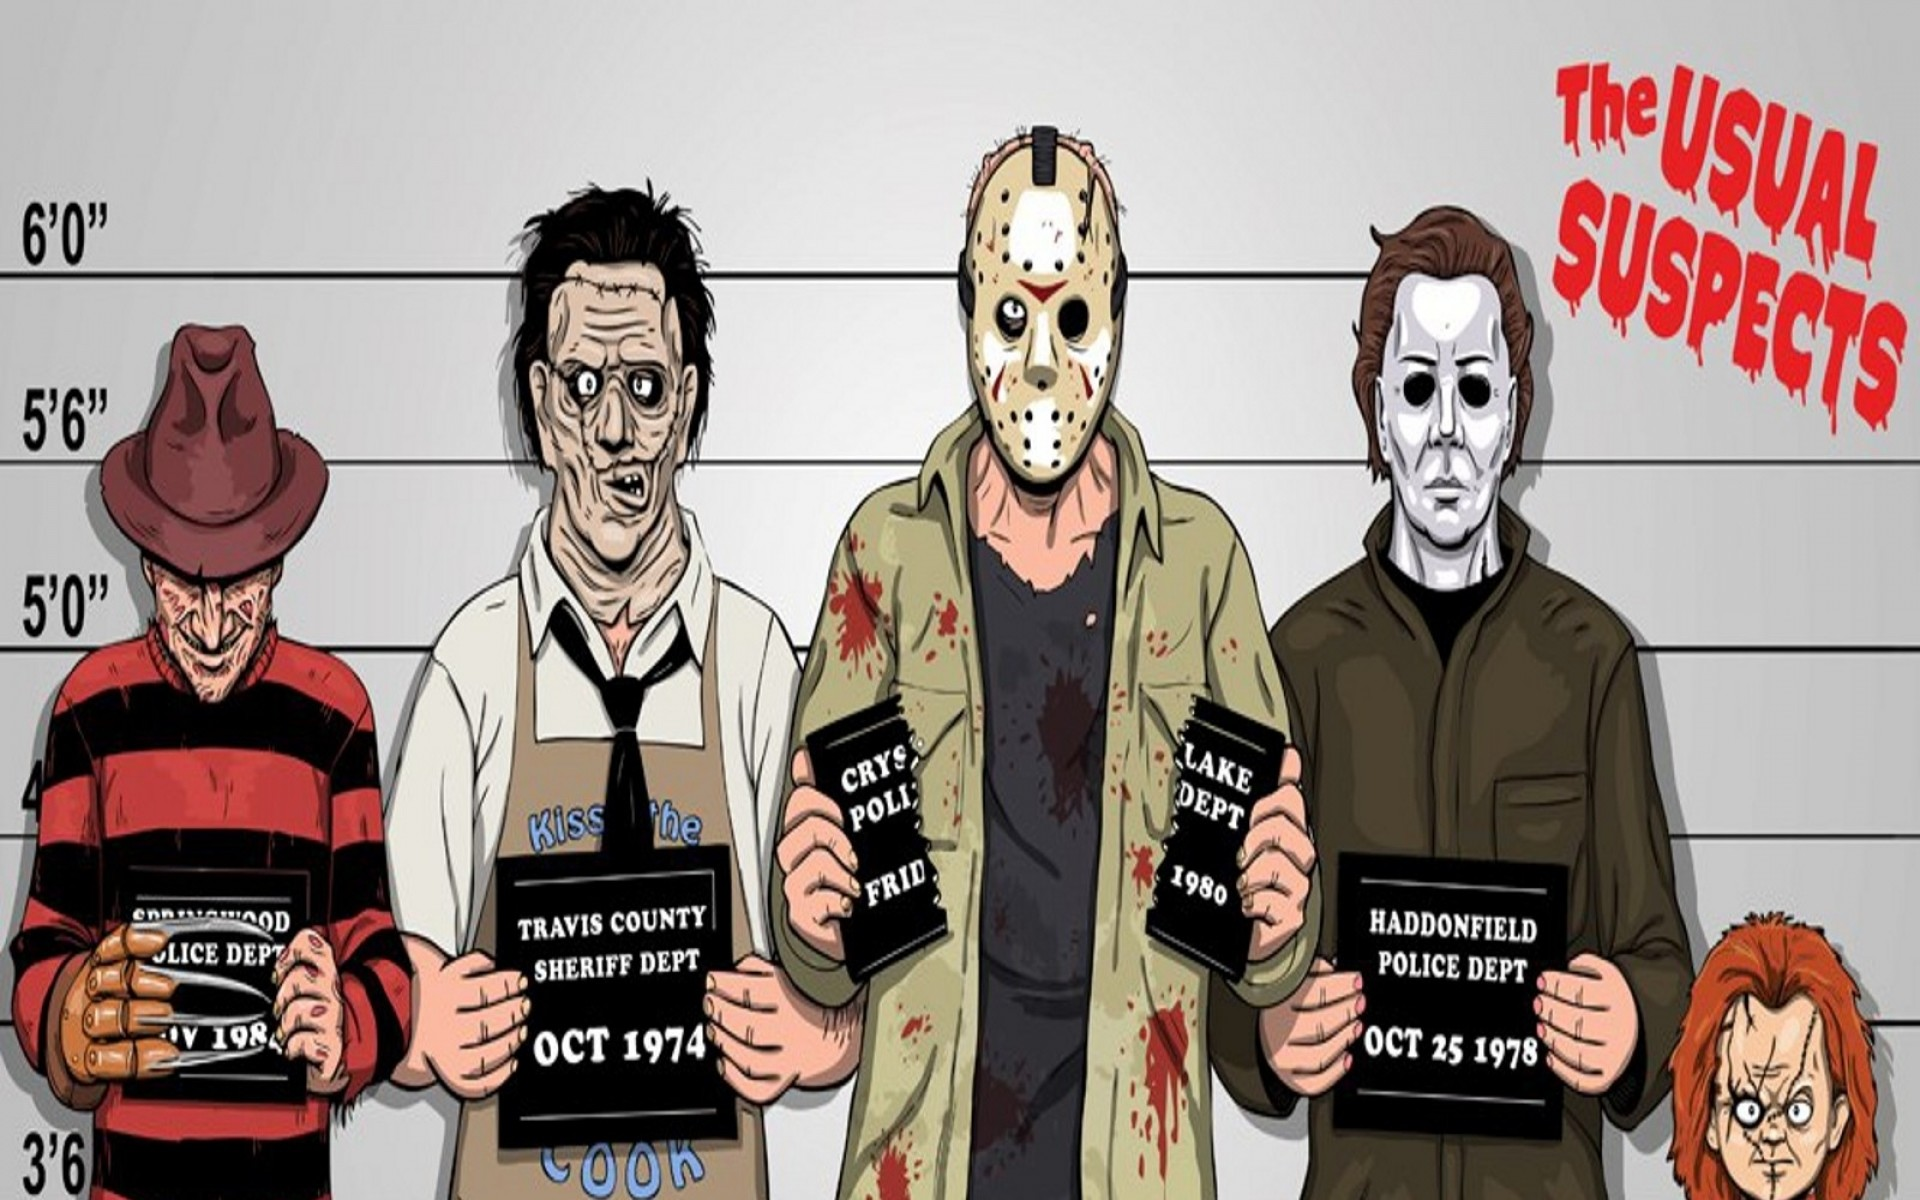 comics funny freddy krueger jason voorhees michael myers the usual suspects  leatherface 1600×1200 Art HD Wallpaper